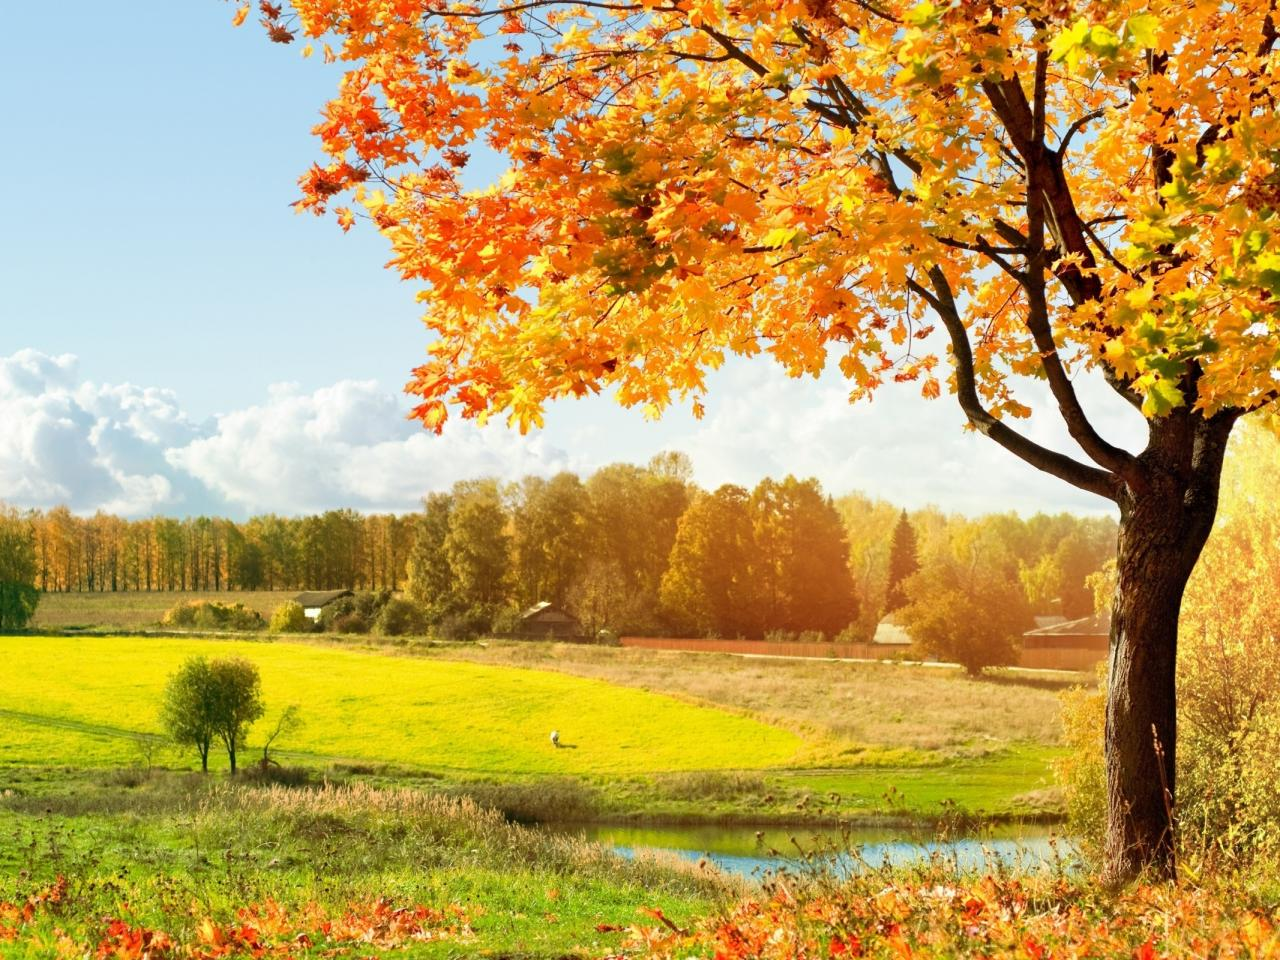 Autumn HD Wallpapers   HD Wallpapers 1280x960